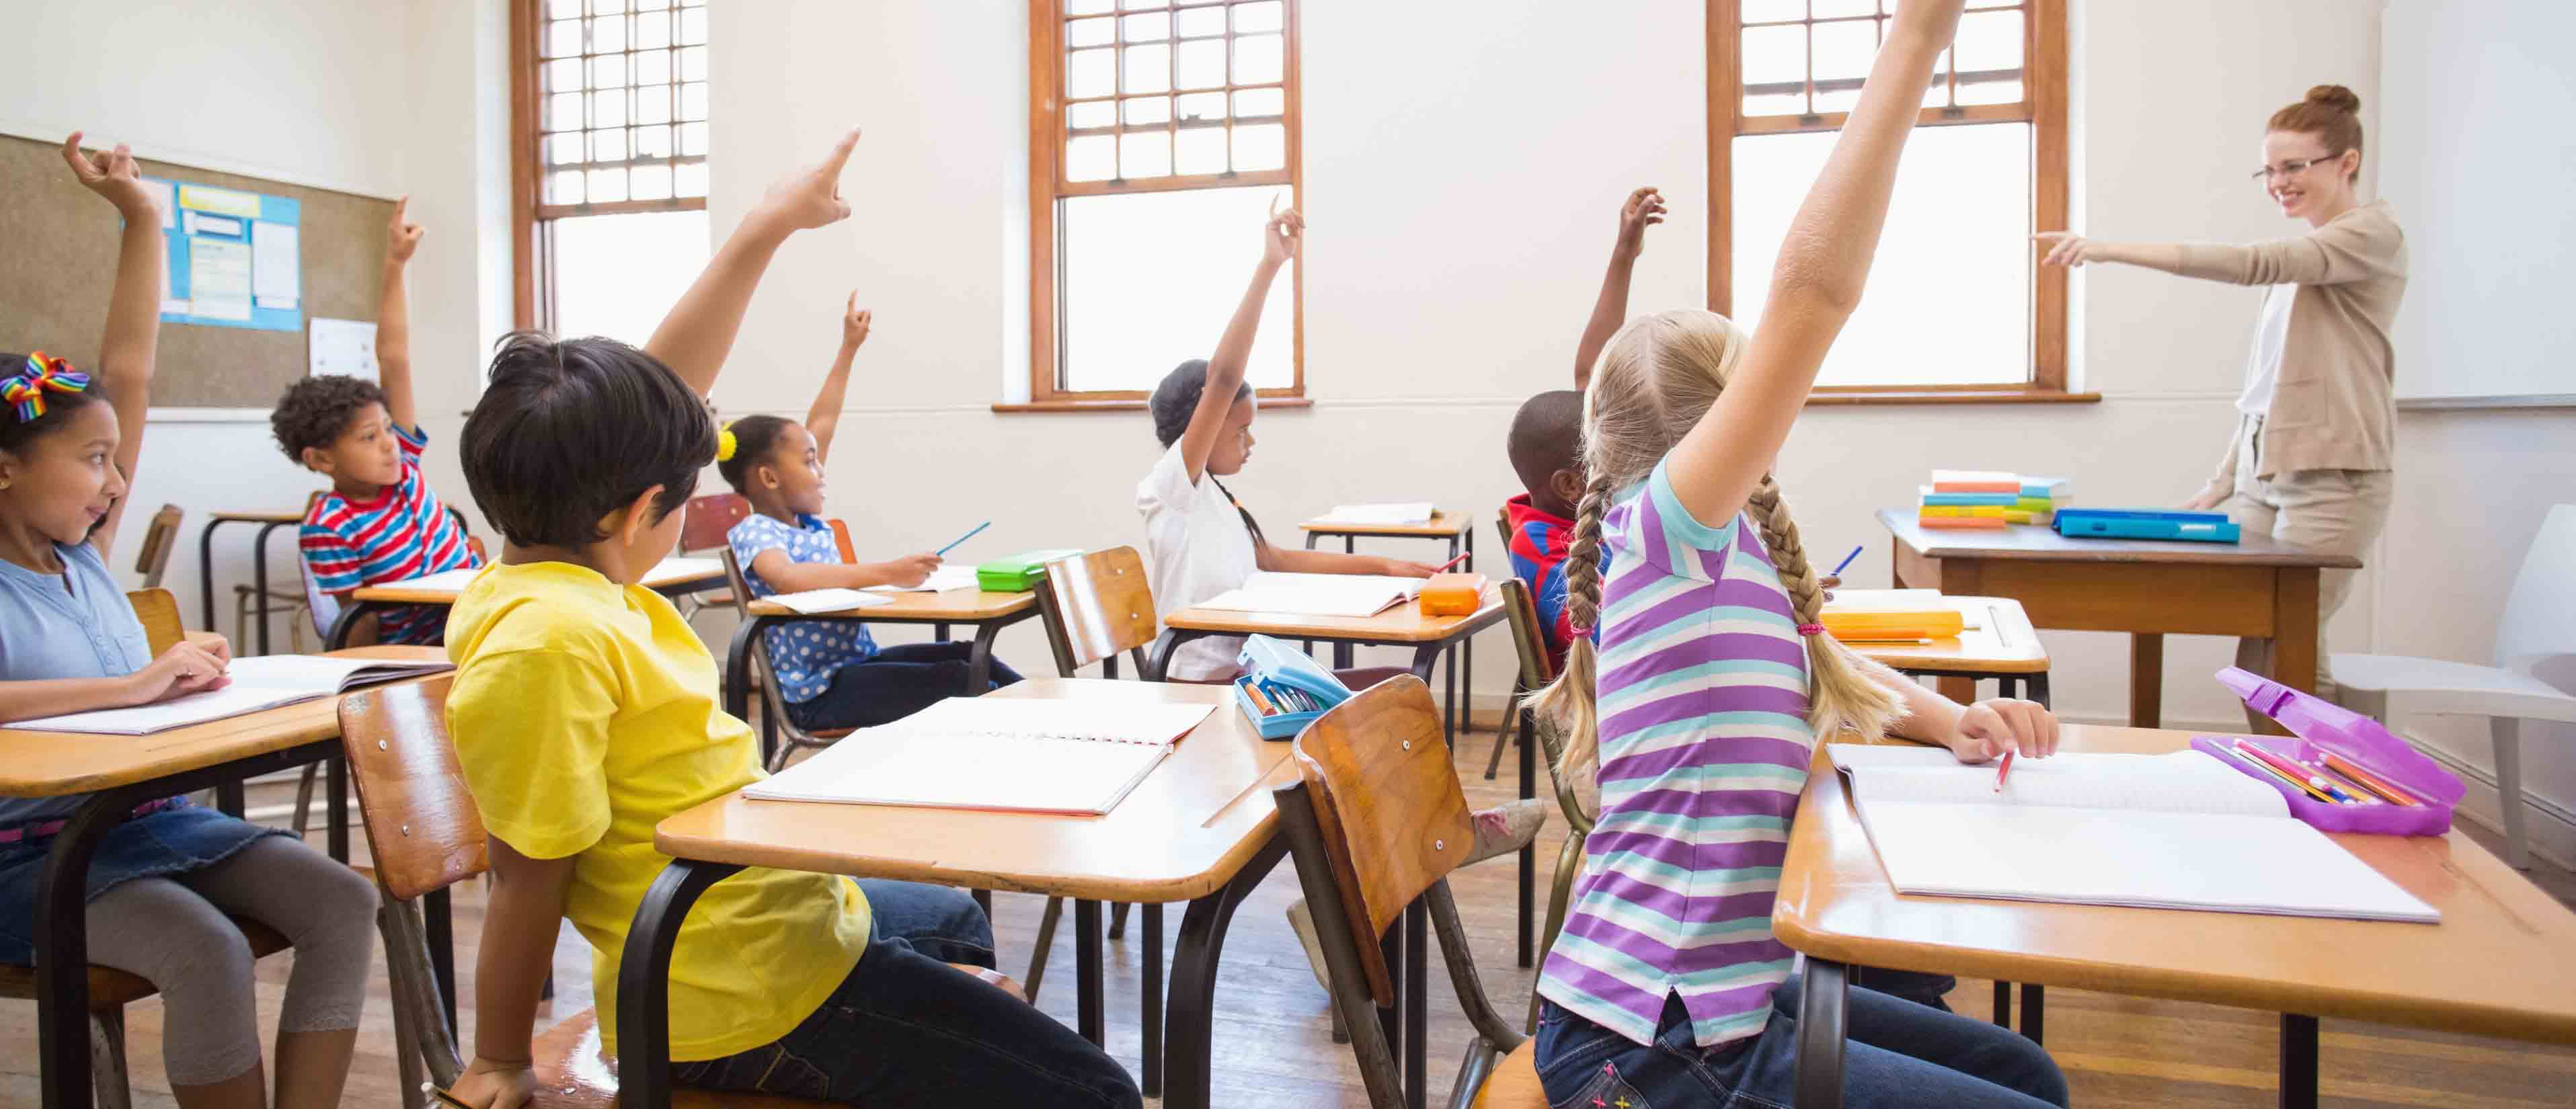 kids raising hands to answer kids math questions